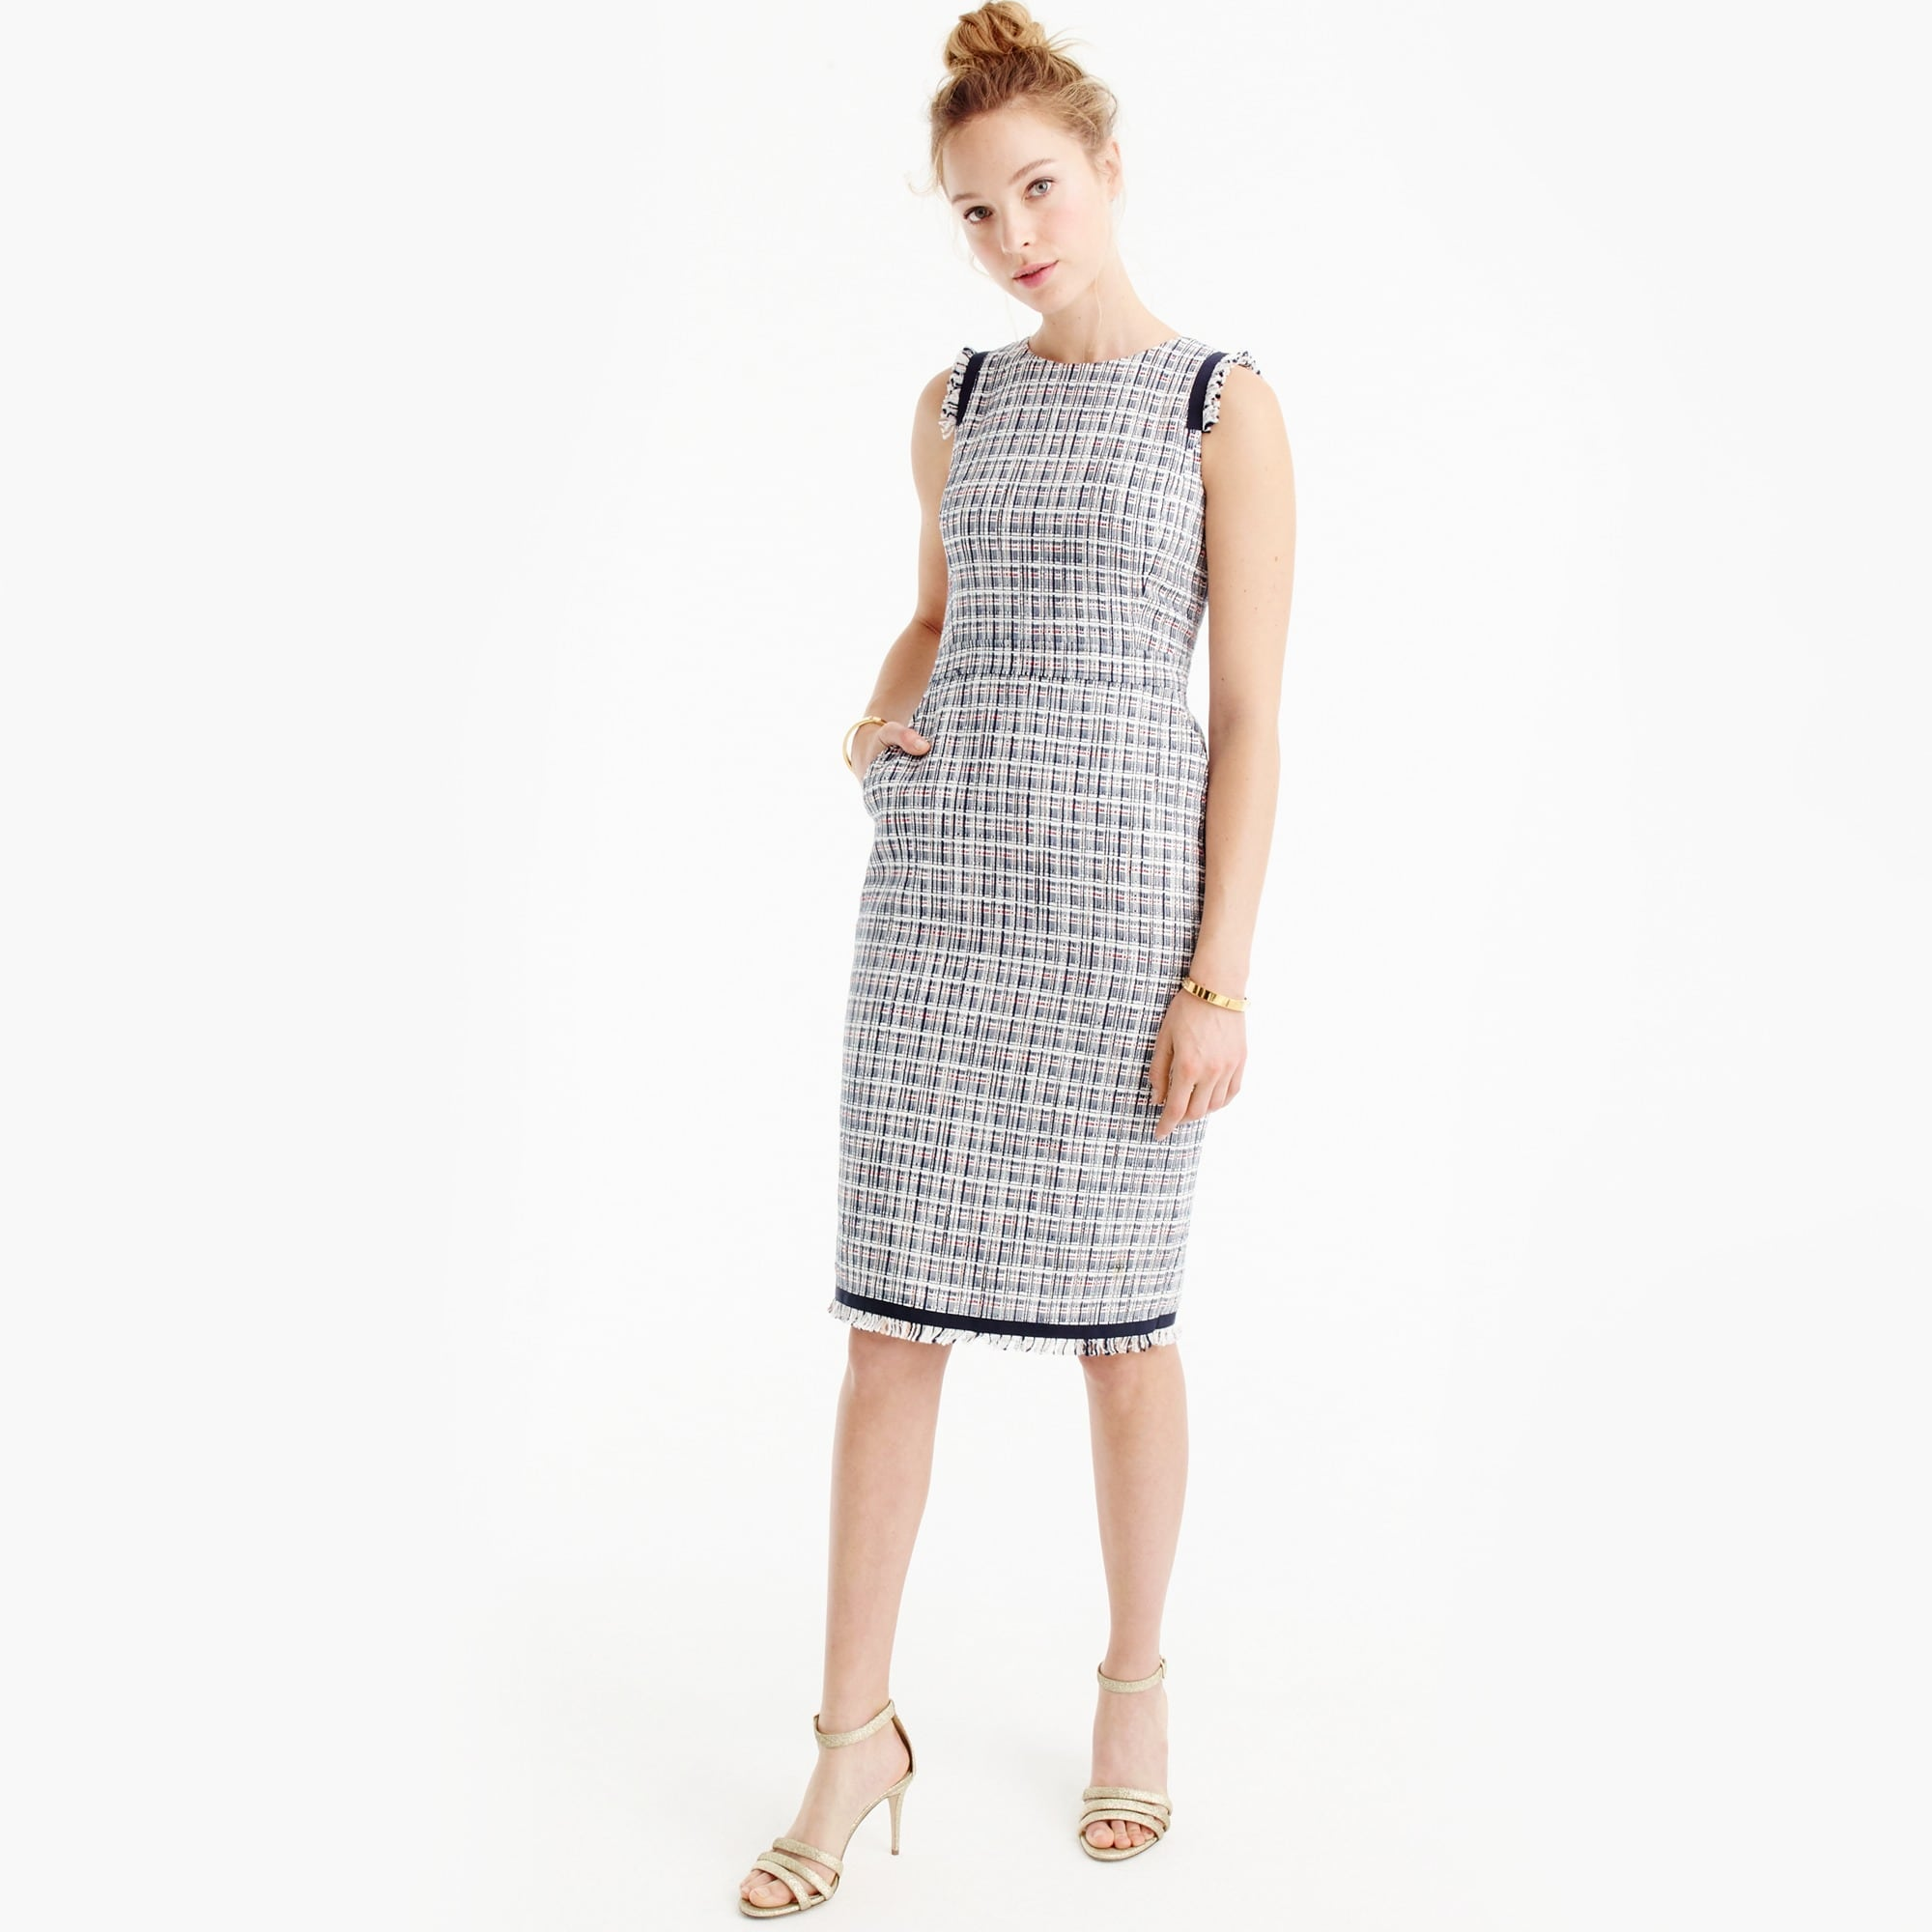 Petite sheath dress in lightweight tweed